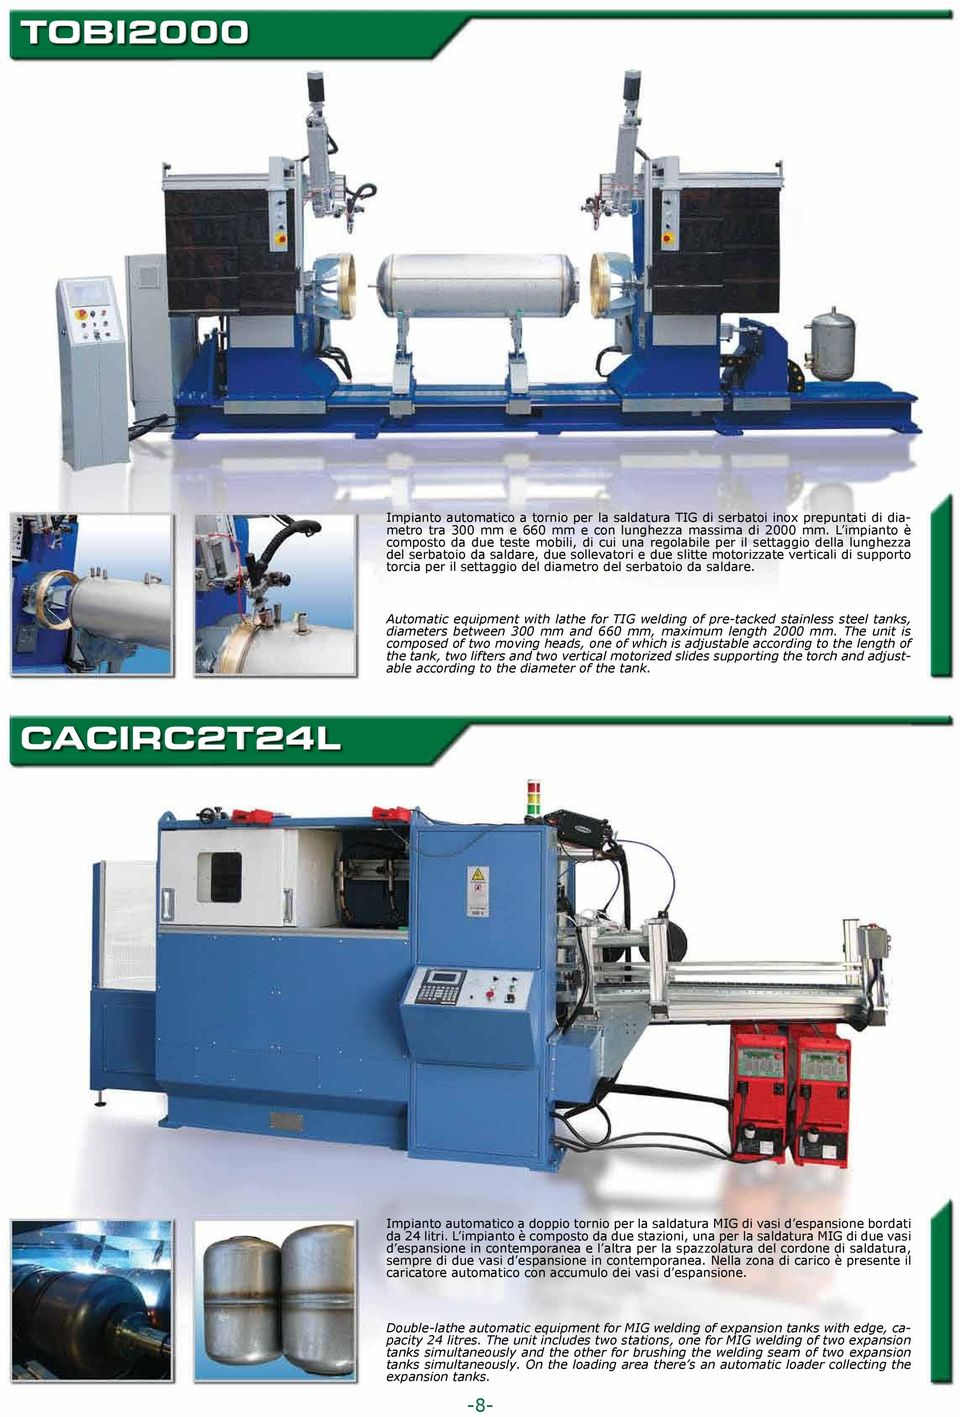 il settaggio del diametro del serbatoio da saldare. Automatic equipment with lathe for TIG welding of pre-tacked stainless steel tanks, diameters between 300 mm and 660 mm, maximum length 2000 mm.